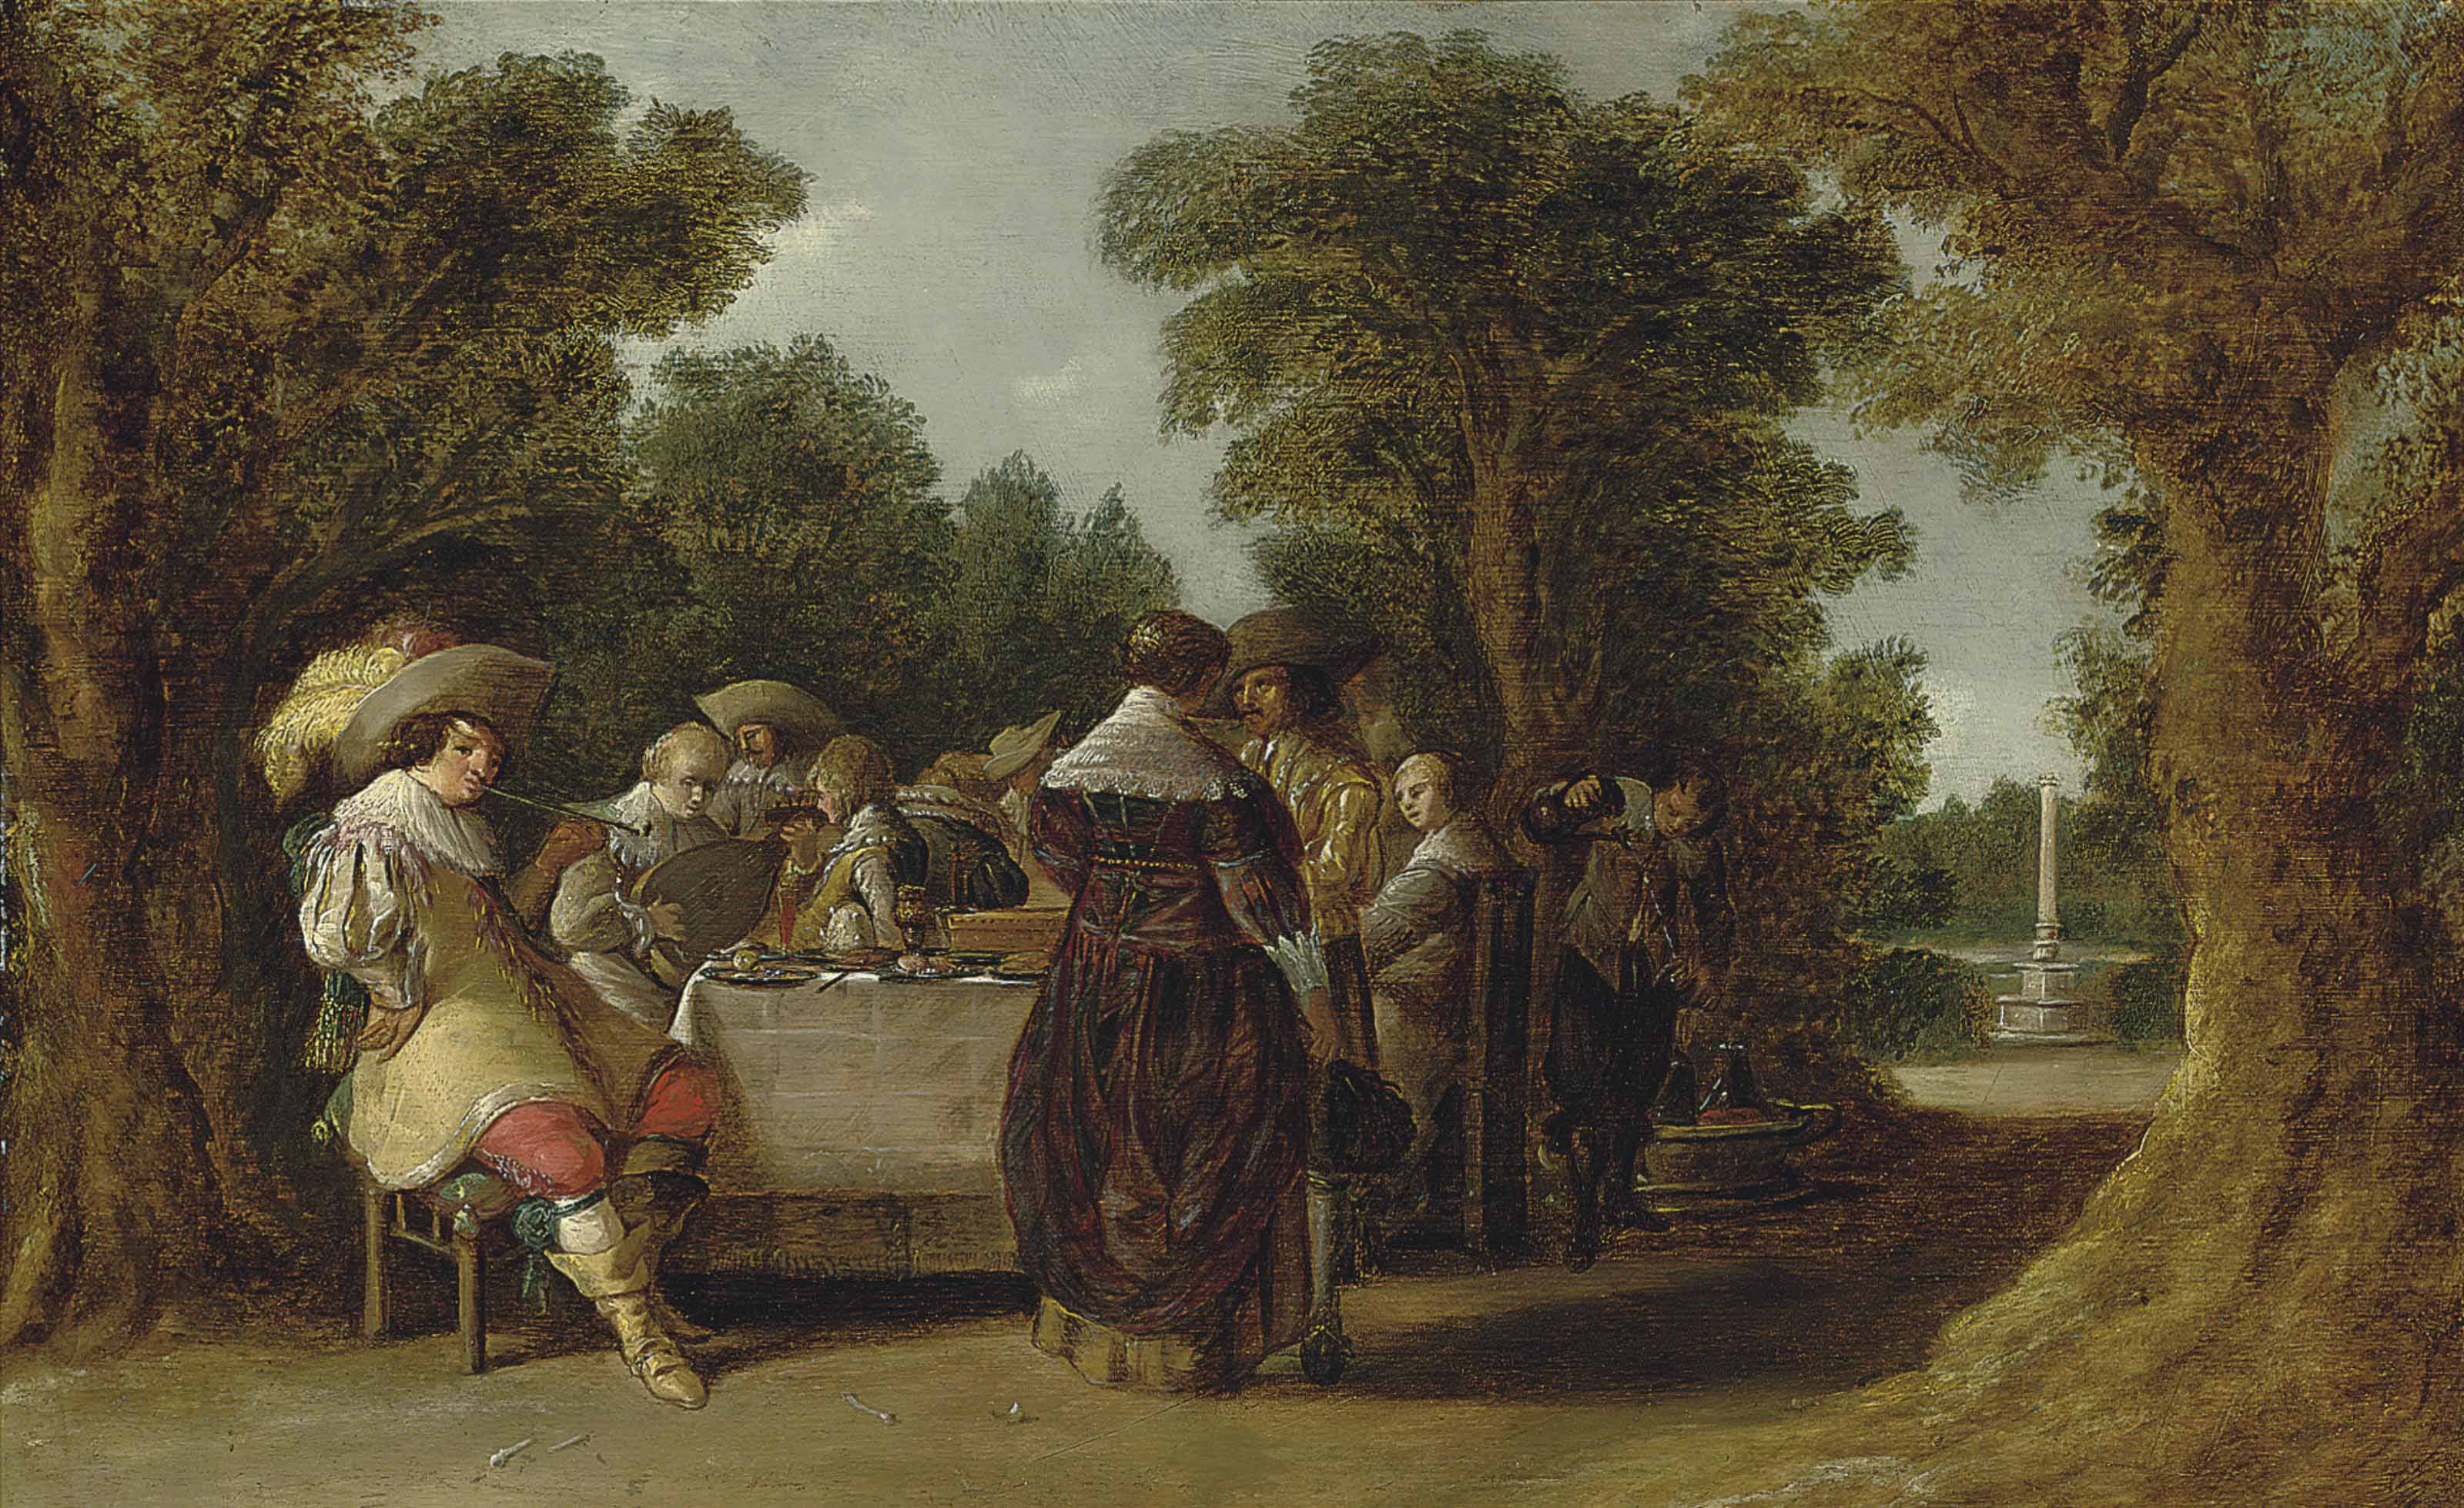 A banquet with elegant company in a wooded landscape